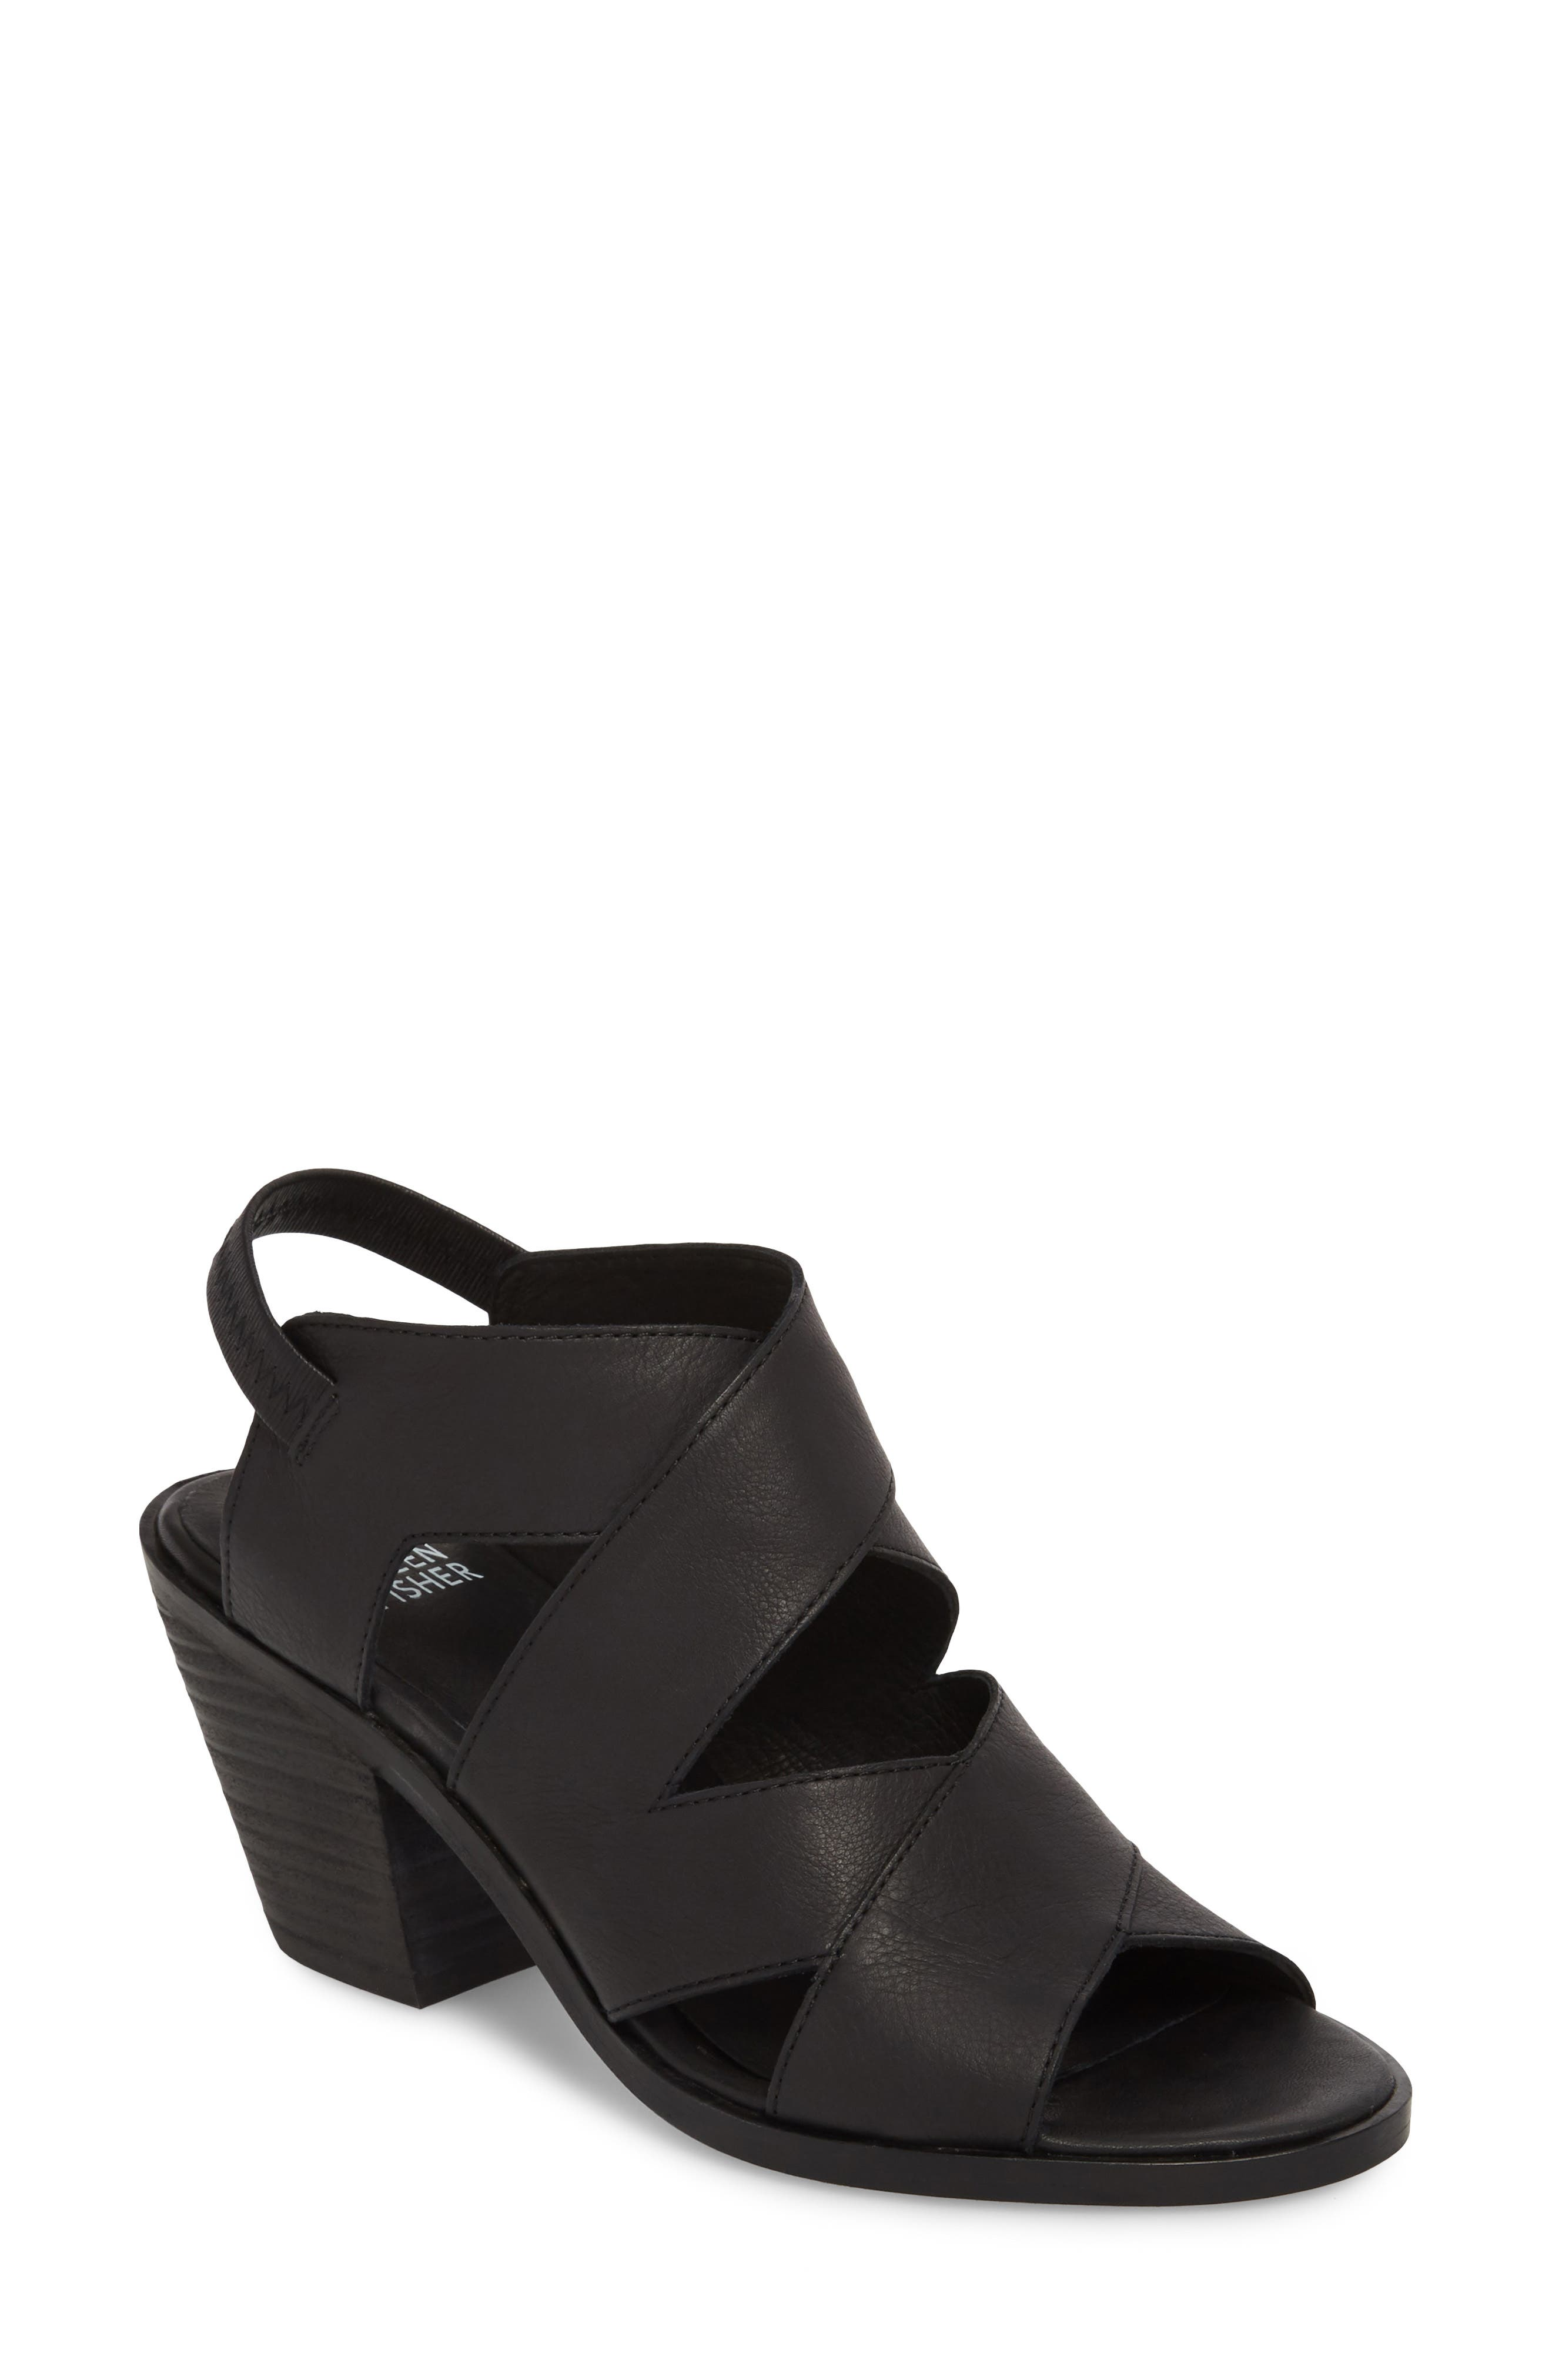 Rai Sandal,                         Main,                         color, Black Leather